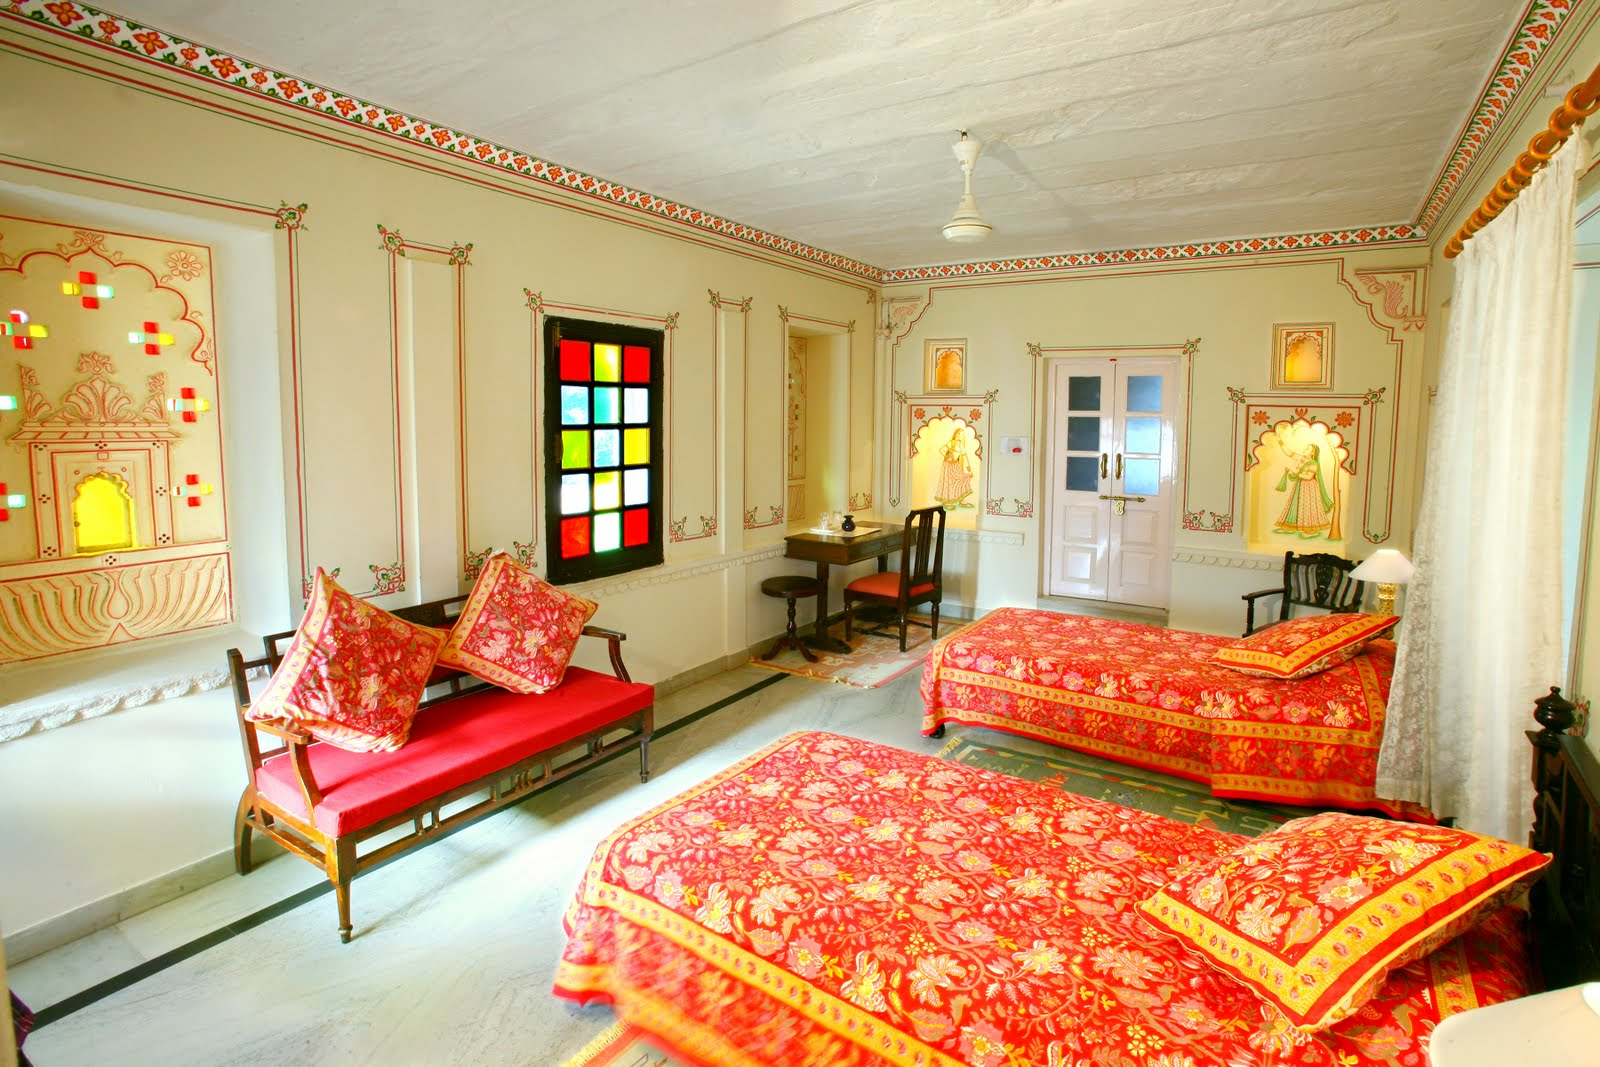 Rajasthani style interior design ideas palace interiors for Home decoration photos